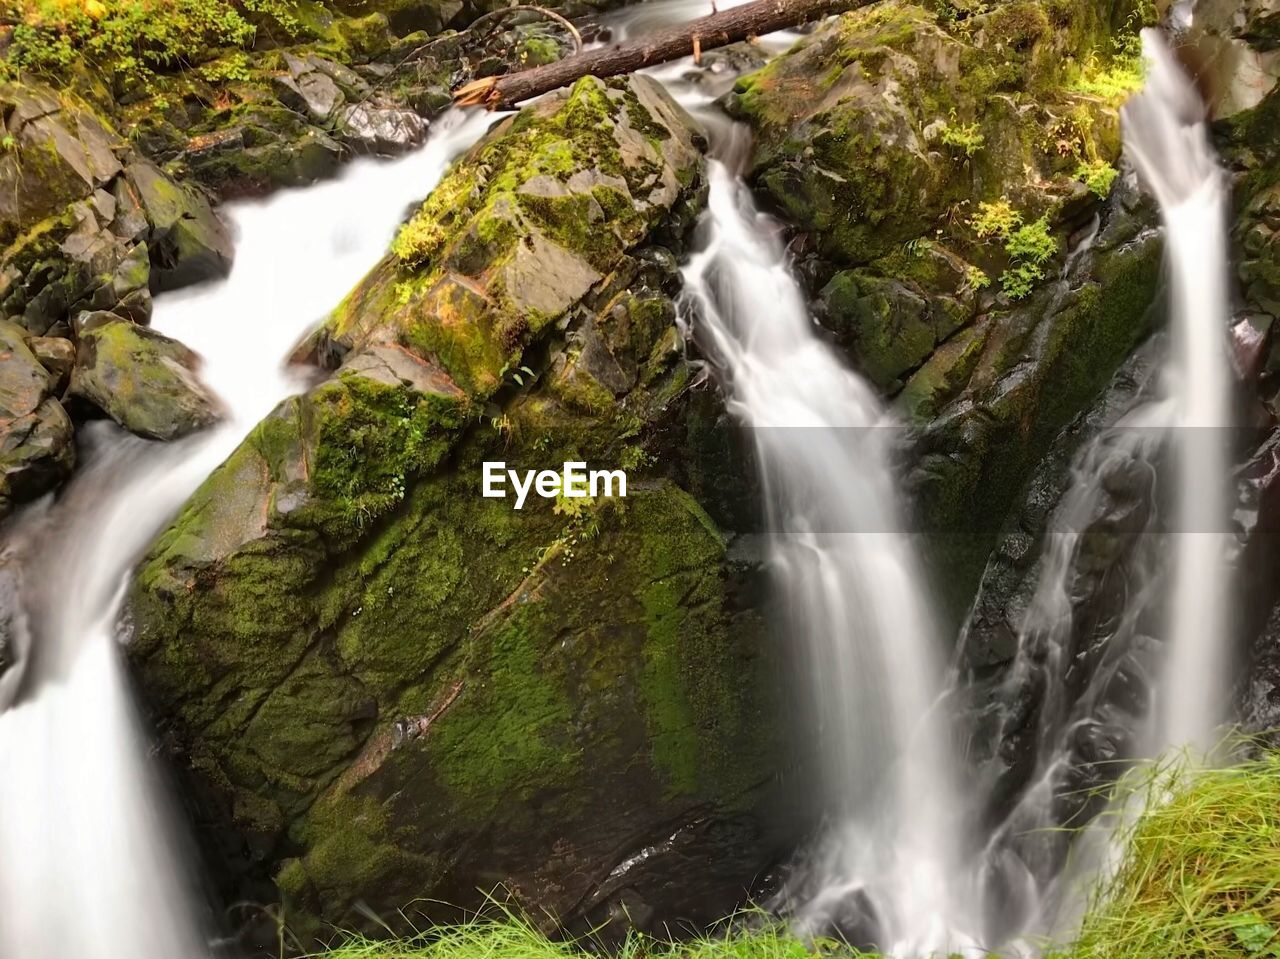 waterfall, water, long exposure, motion, rock, beauty in nature, scenics - nature, rock - object, blurred motion, solid, flowing water, moss, land, nature, forest, plant, tree, no people, outdoors, flowing, power in nature, falling water, stream - flowing water, rainforest